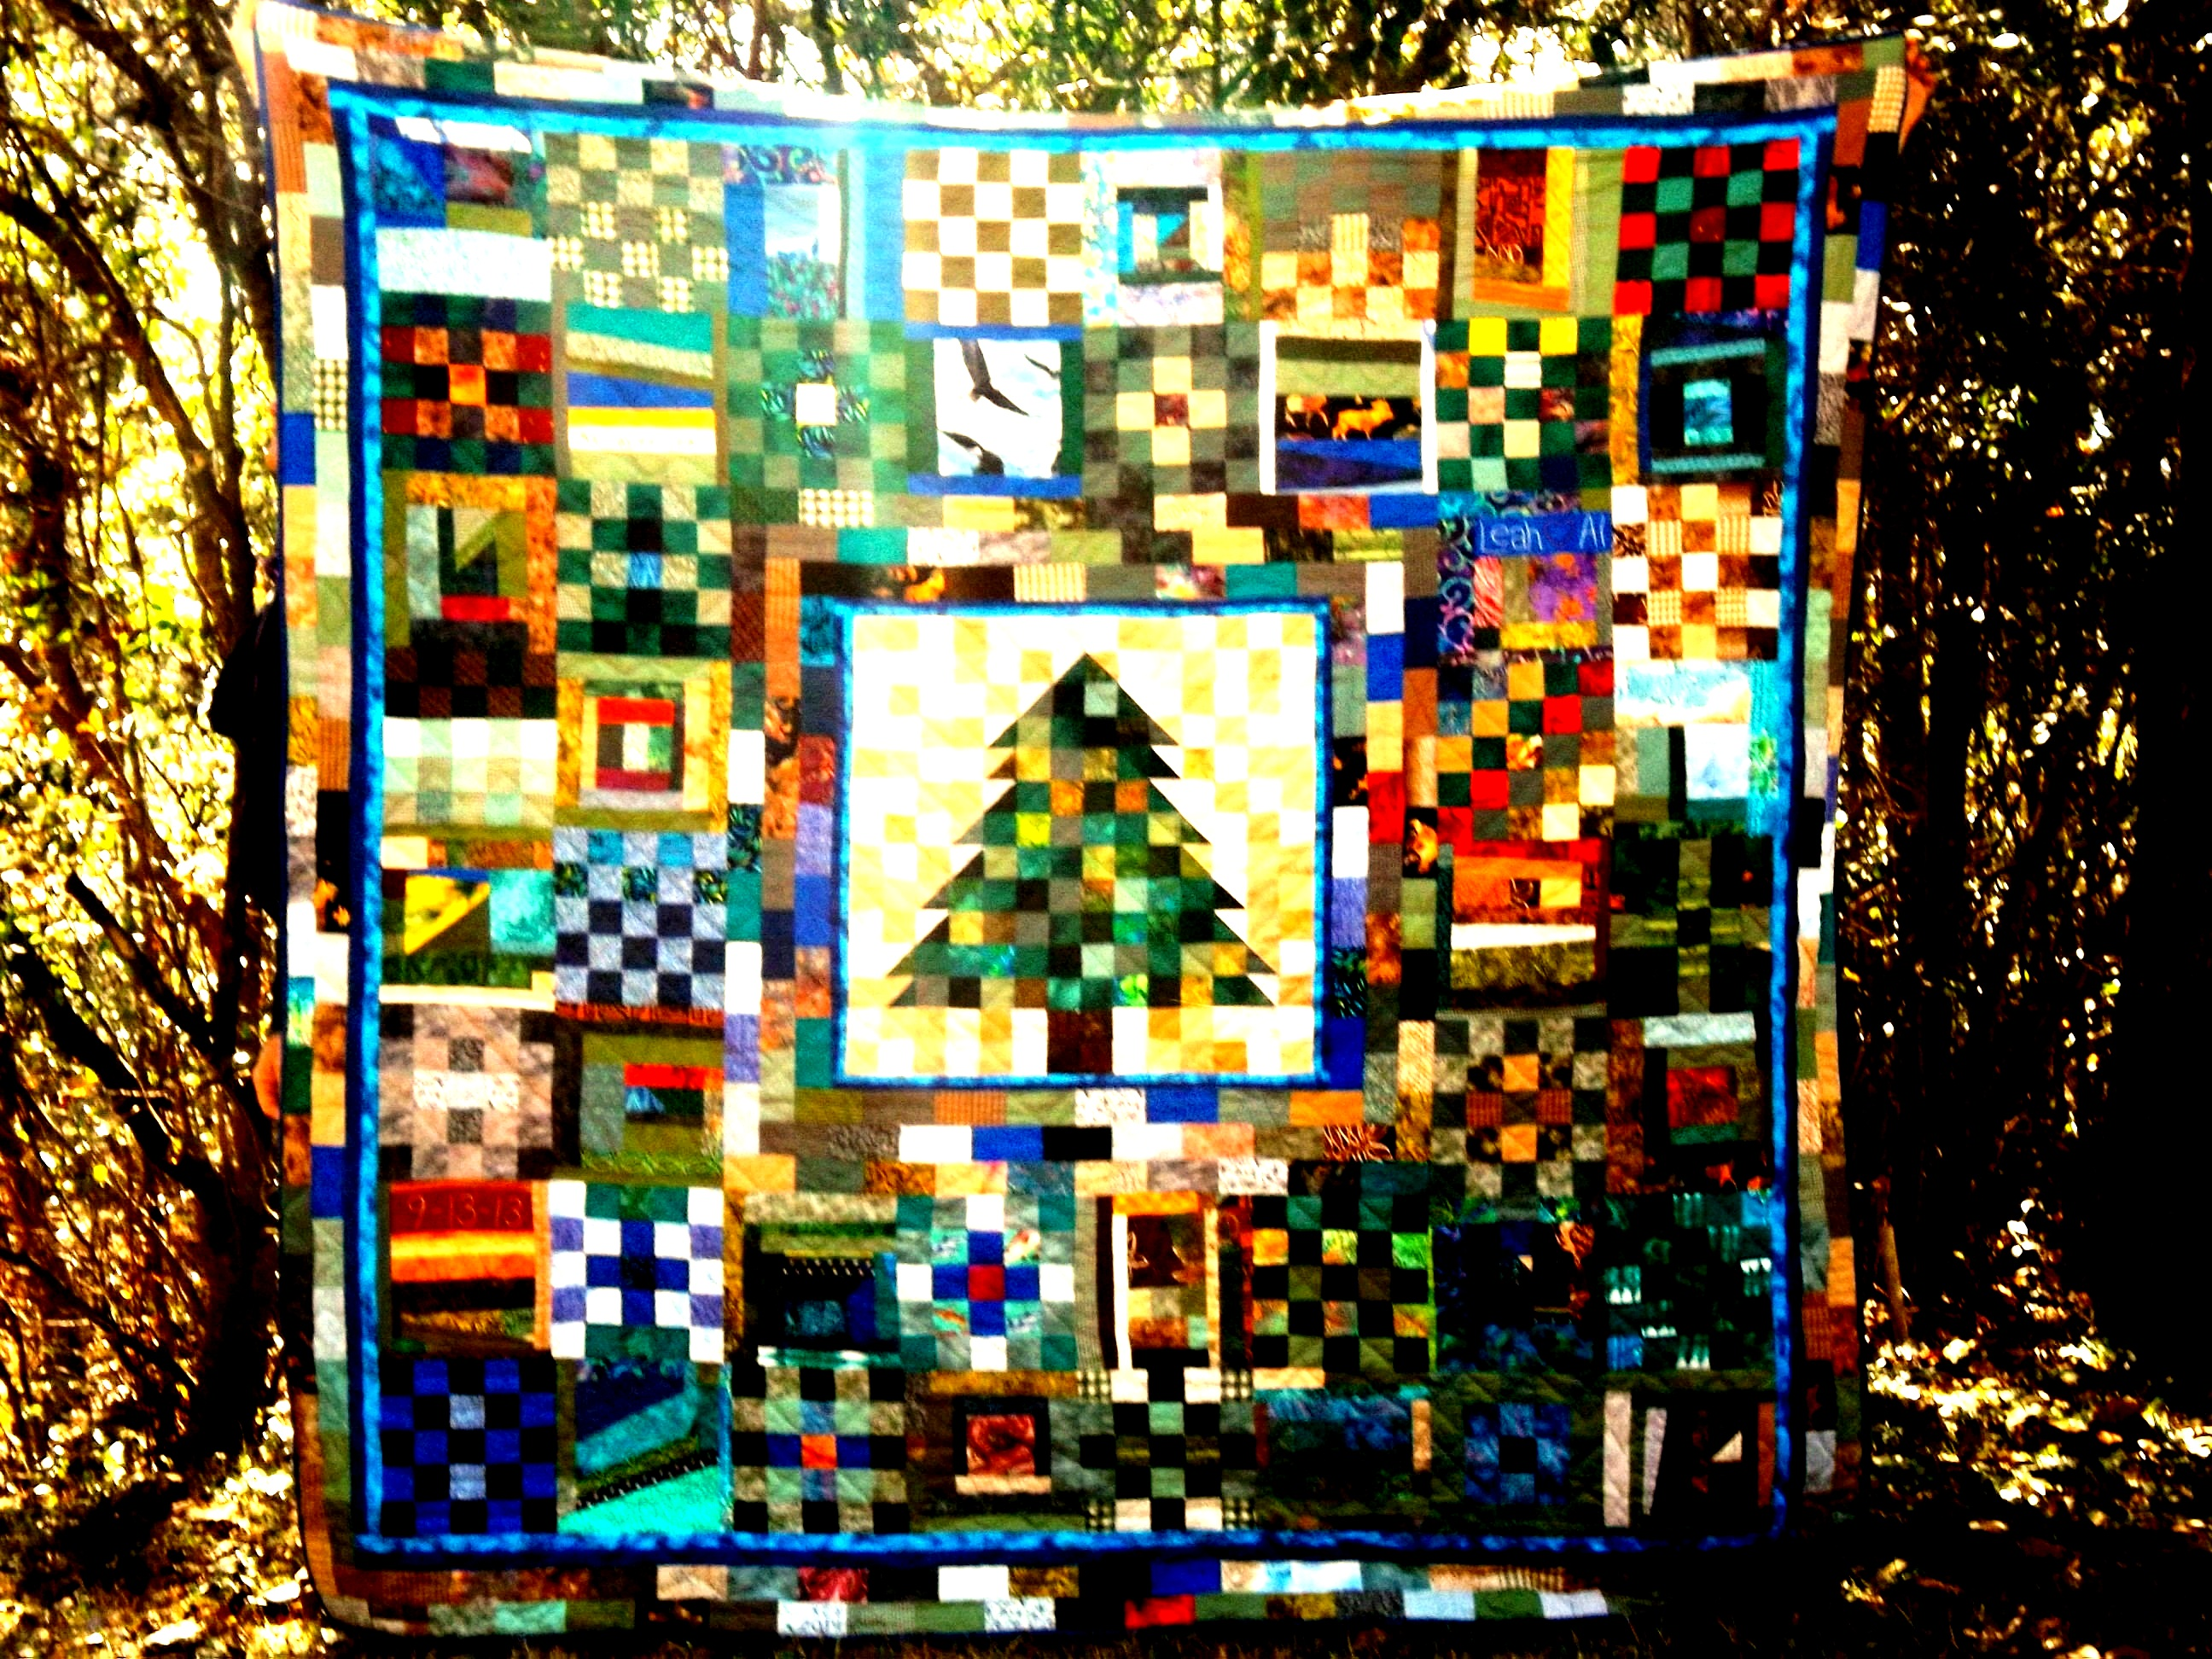 Al & Leah's Wedding Quilt